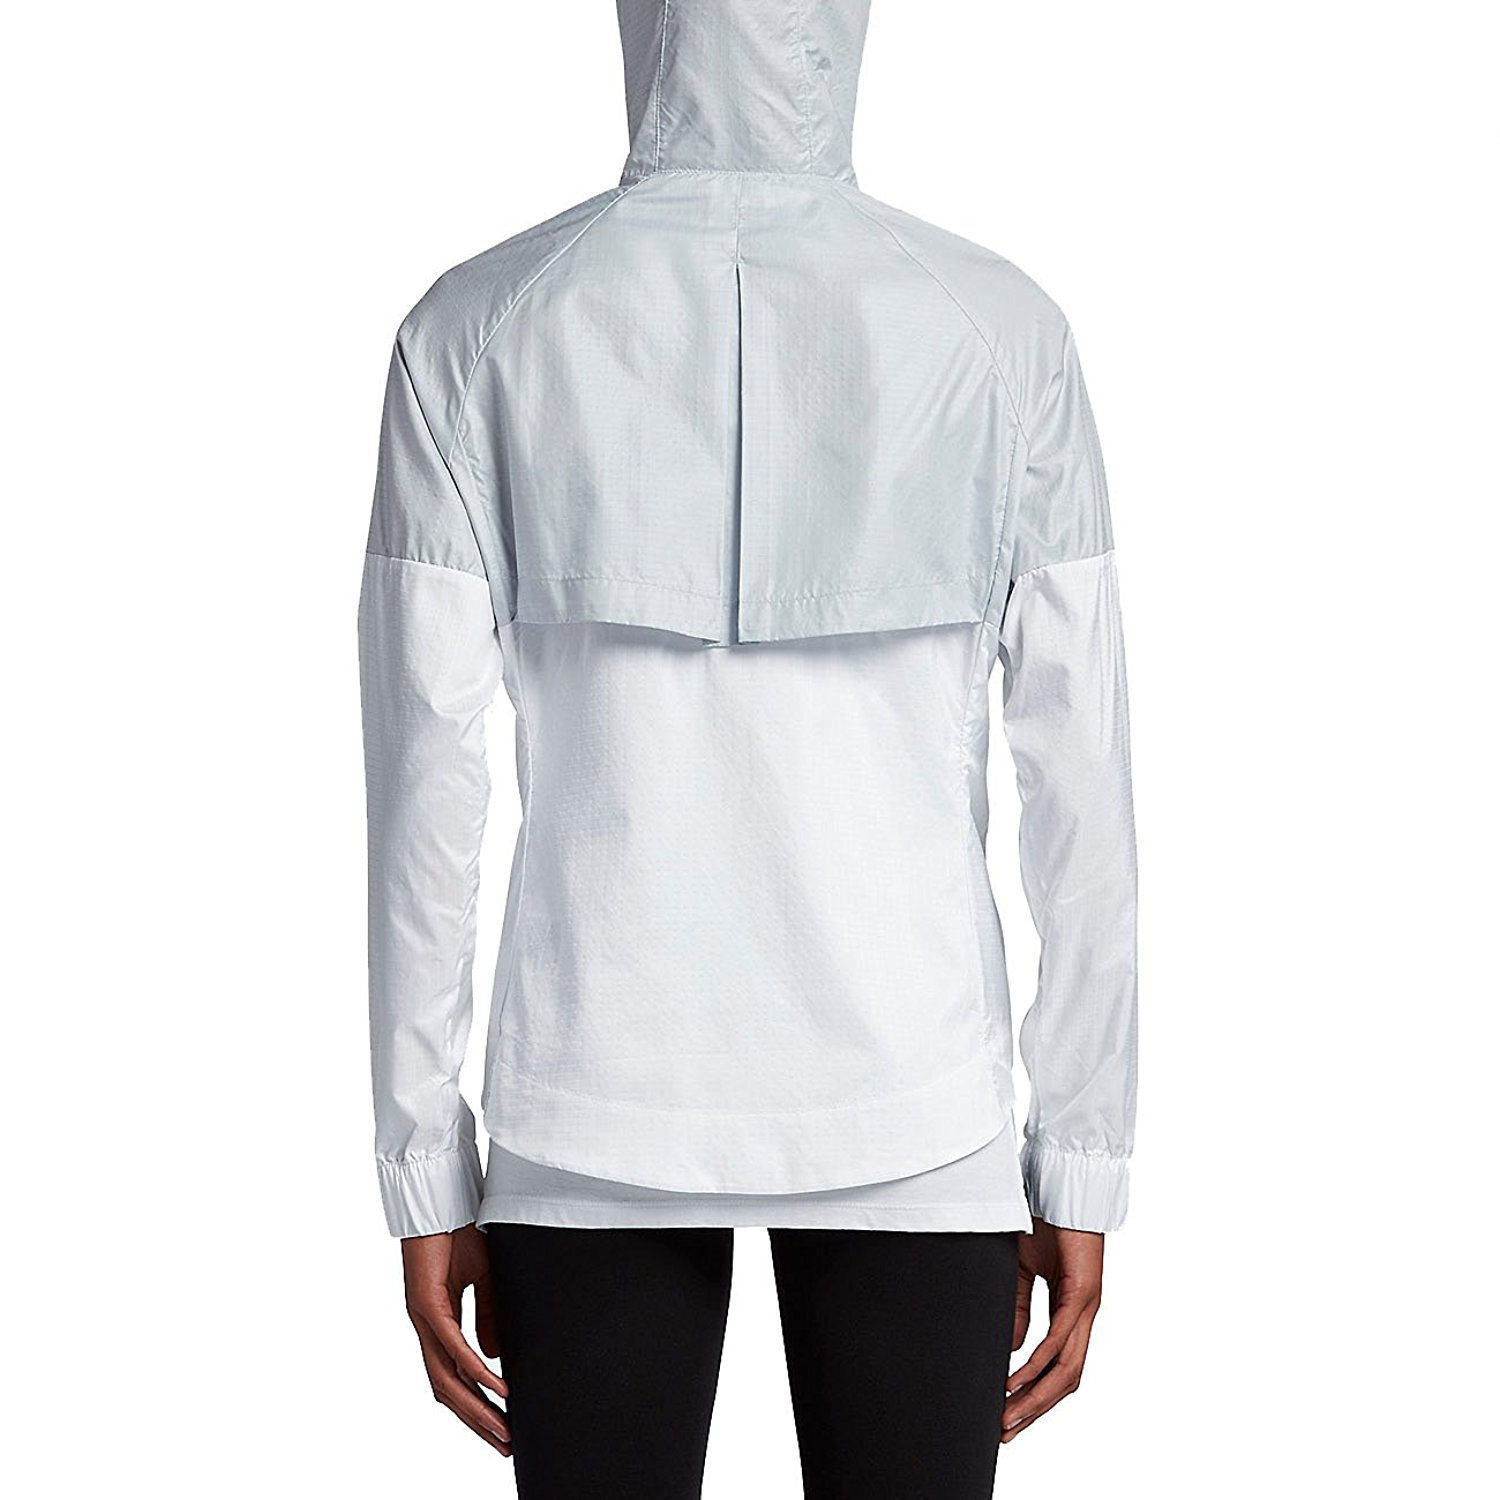 Amazon.com: Chaqueta rompevientos Nike, Blanco, XL: Sports ...